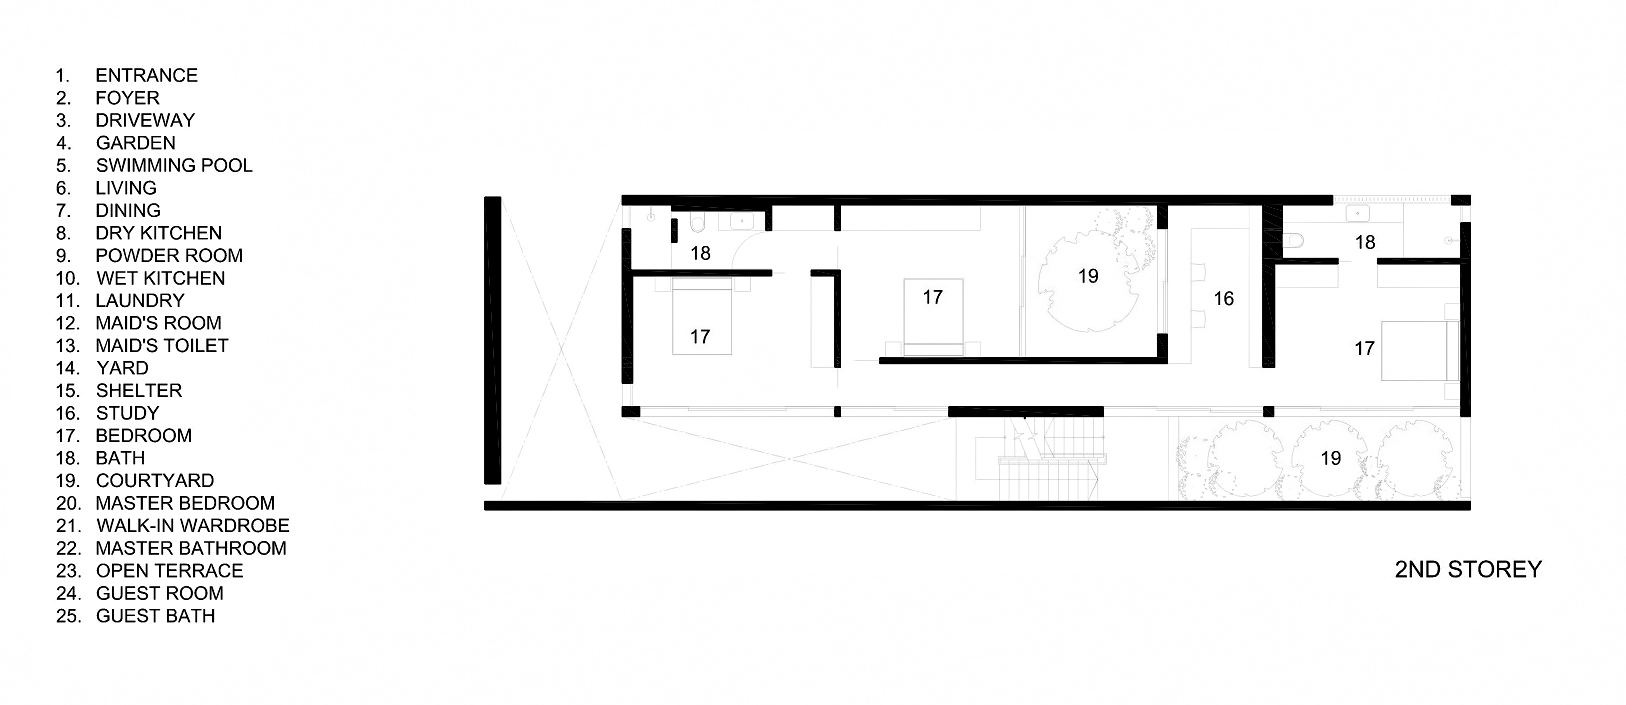 Second Floor Plan – The Space Between Walls House – Prices of Wales Rd, Singapore